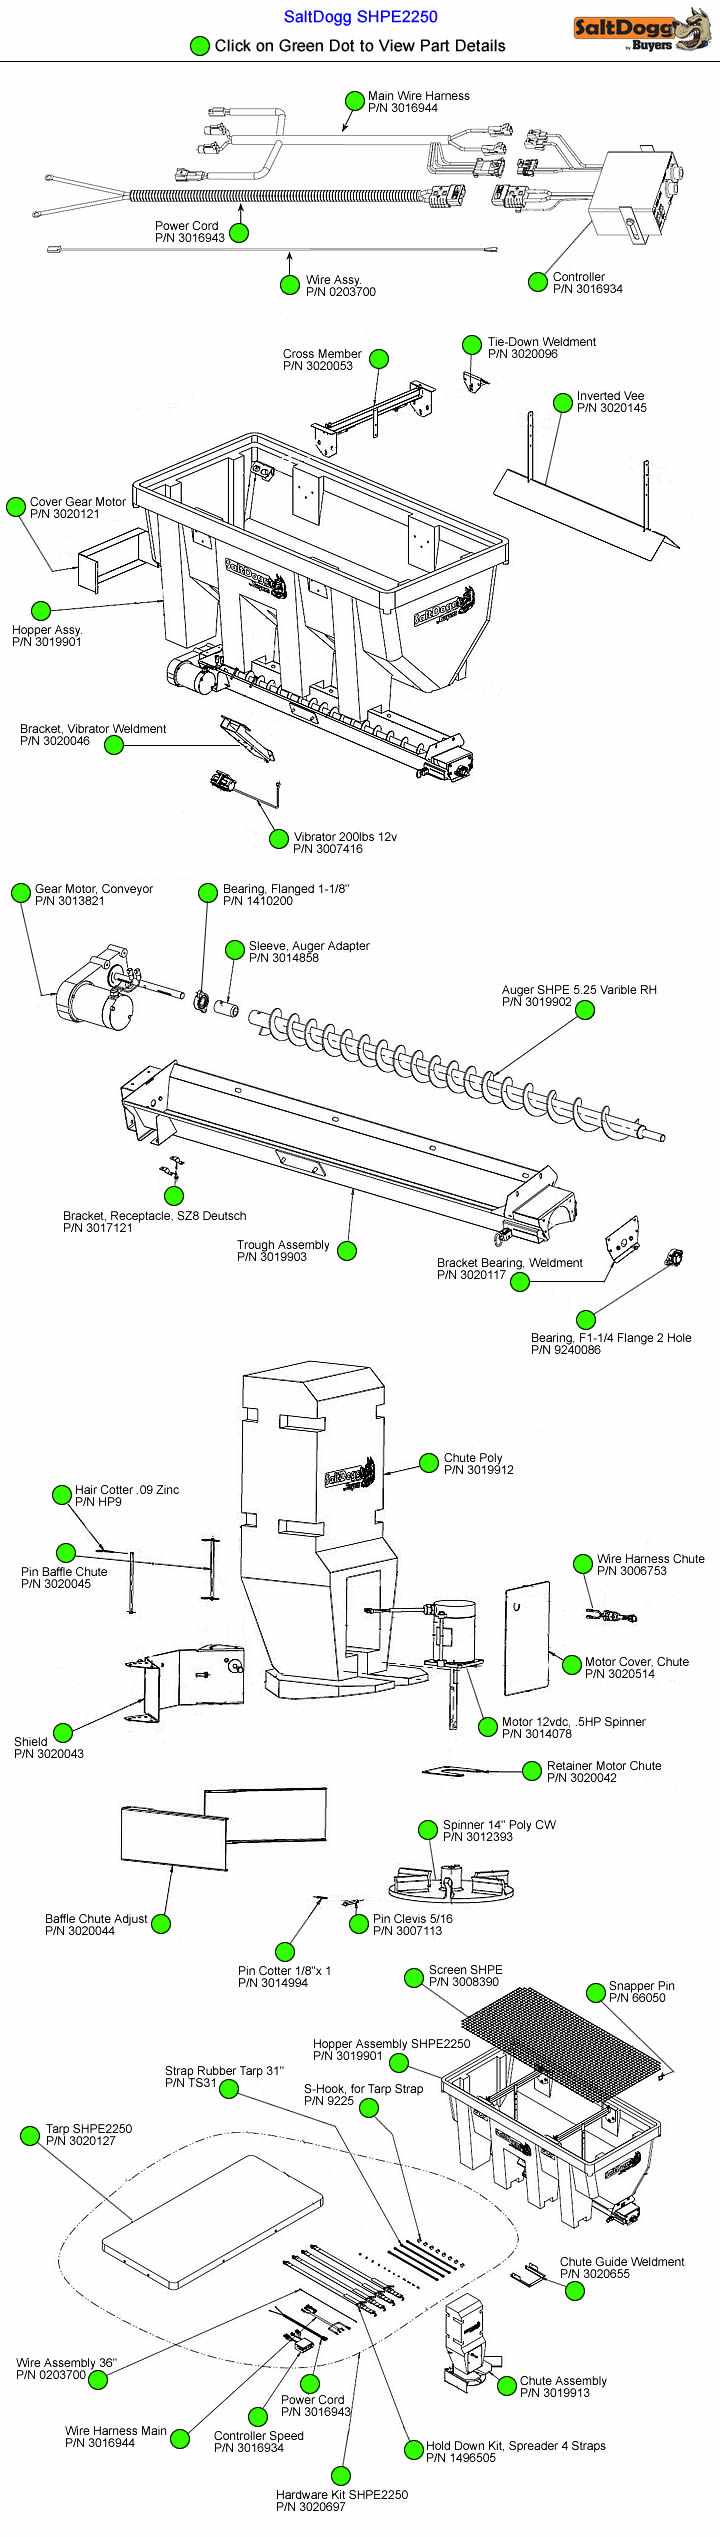 buyers salt spreader wiring diagram buyers saltdogg shpe2250 buyers spreader part diagram  buyers saltdogg shpe2250 buyers